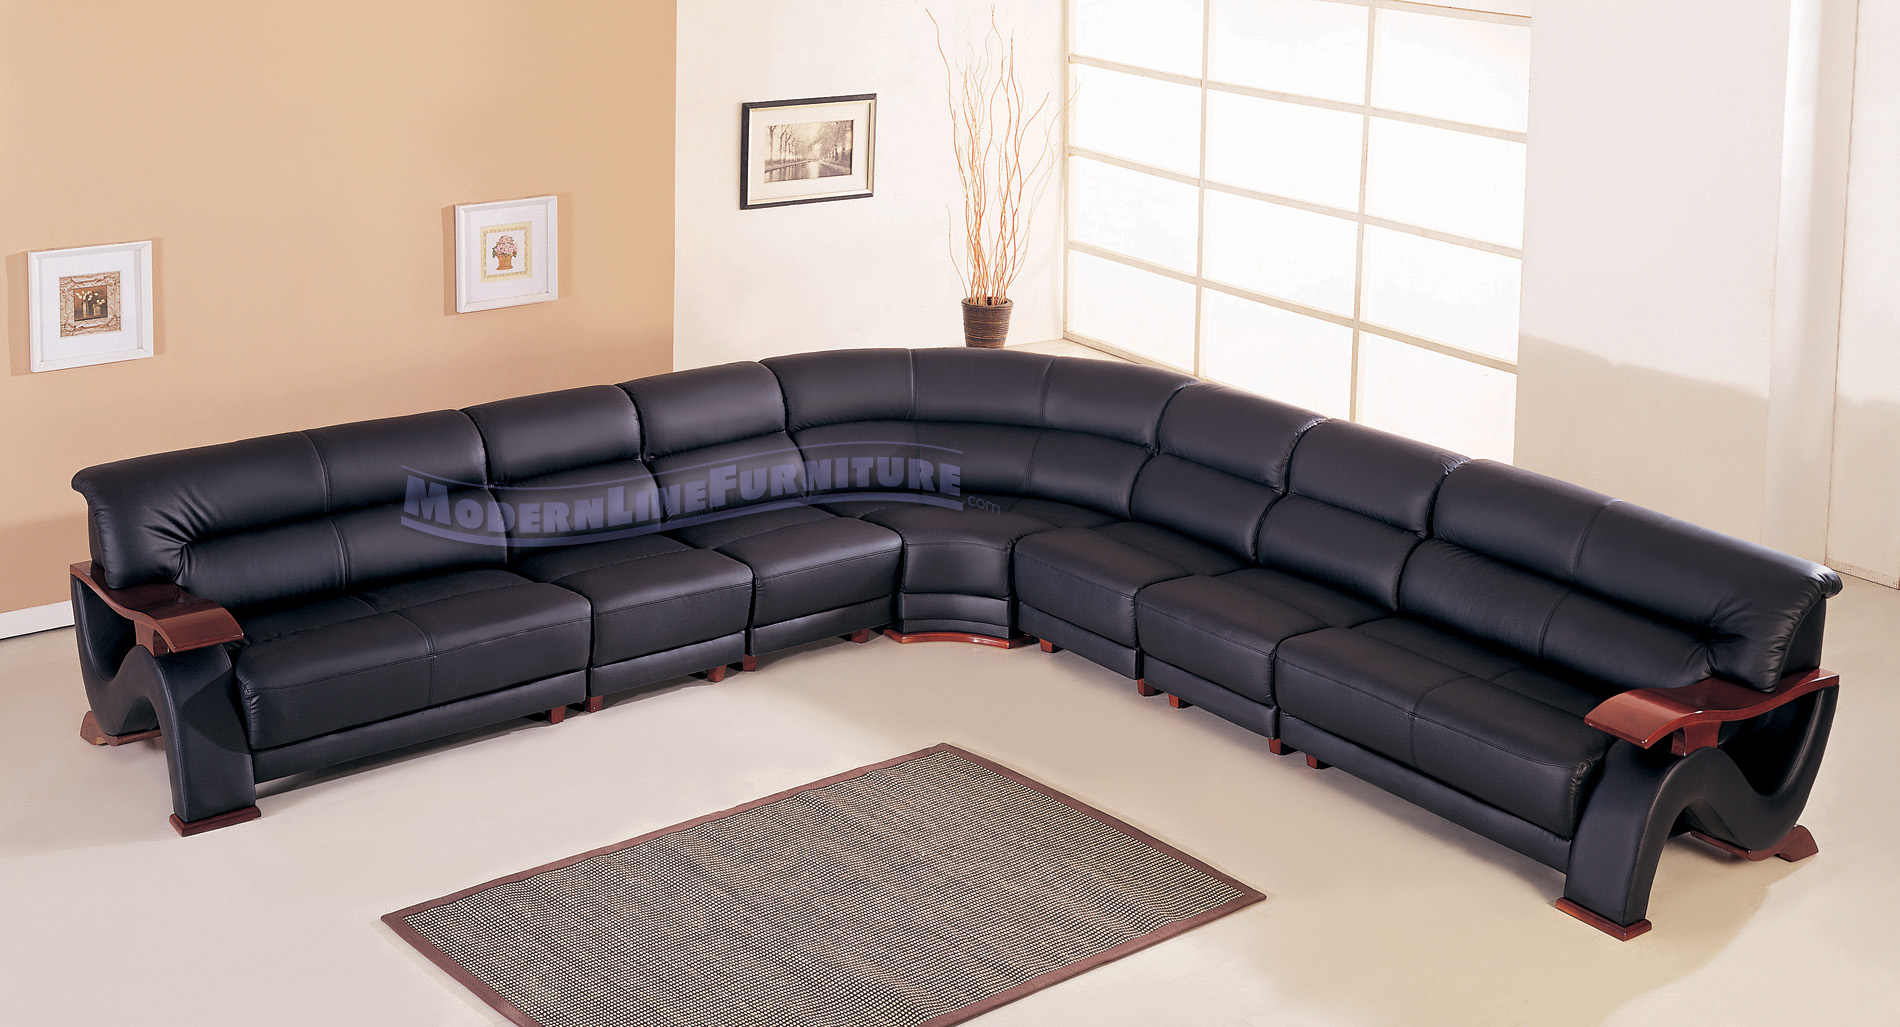 Modern black sofas - Modern Line Furniture Commercial Furniture Custom Made Furniture Modern Black Leather Long Sectional Sofa W Mahogany Arms And Base